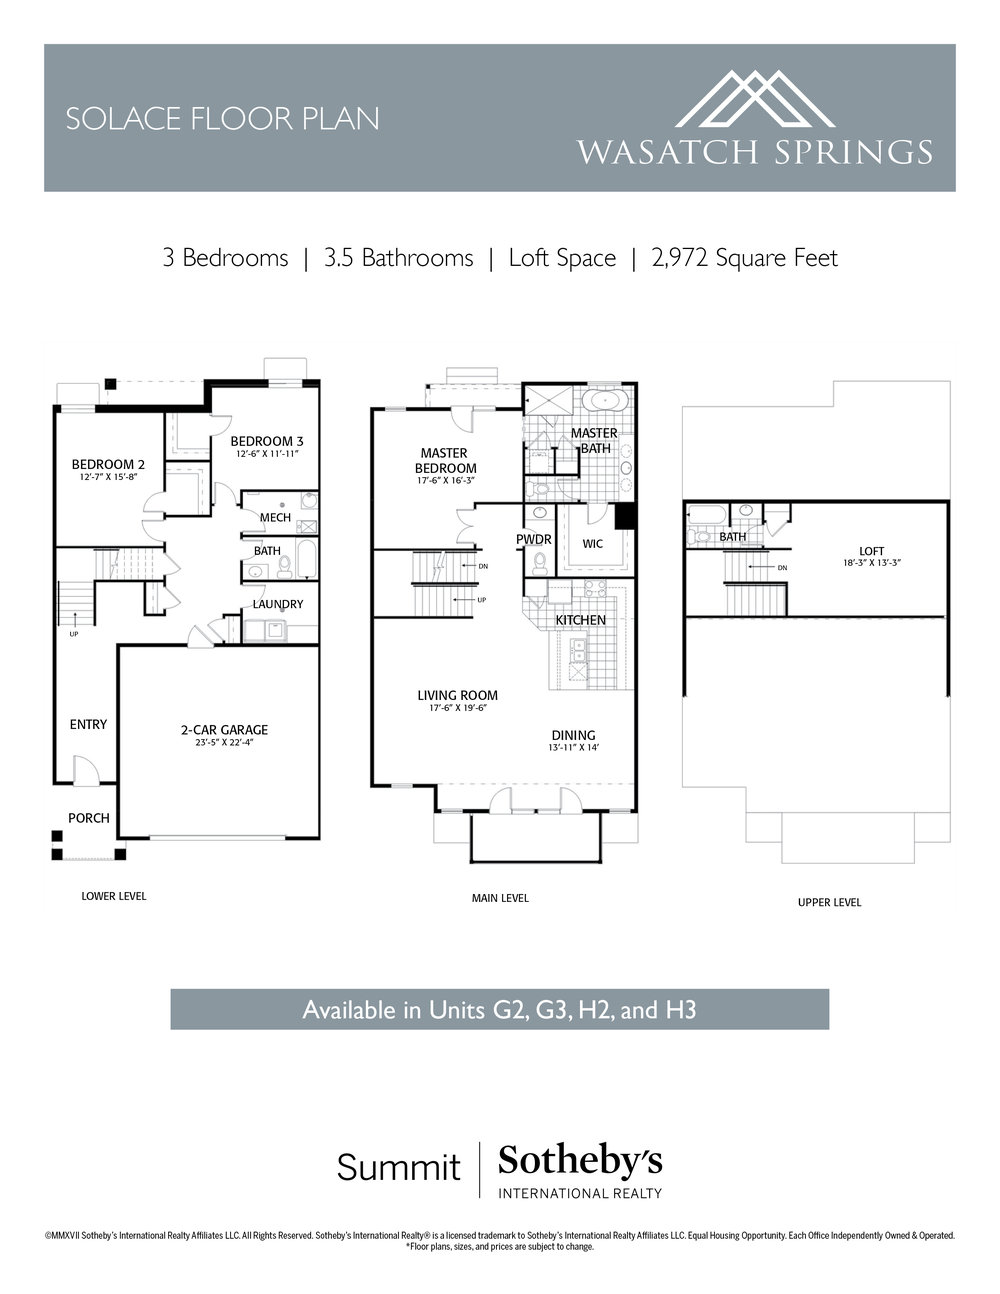 Wasatch Springs Inserts - Solace Floorplan.jpg